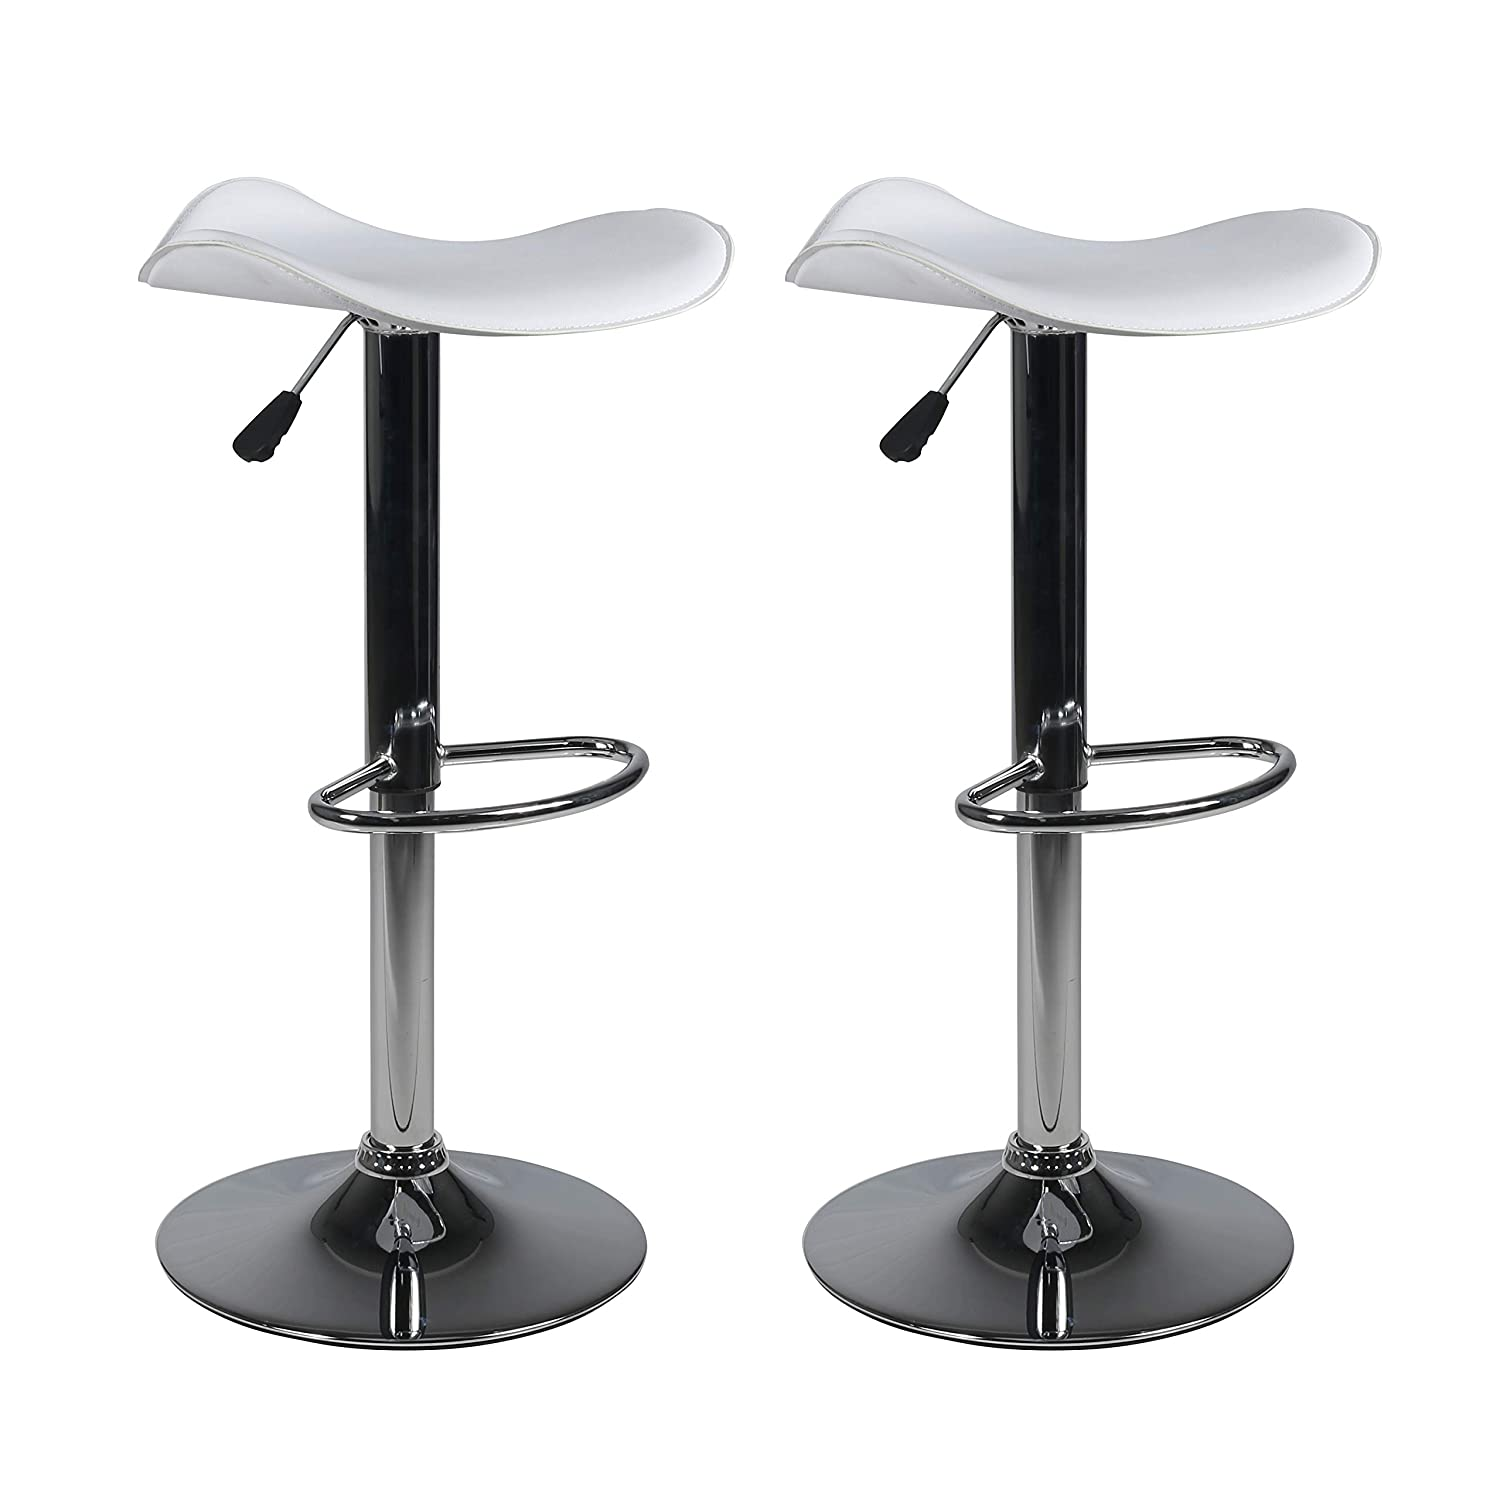 "Milliard Bar Stools | Set of 2 | Height Adjustable 21.5"" - 30"" 